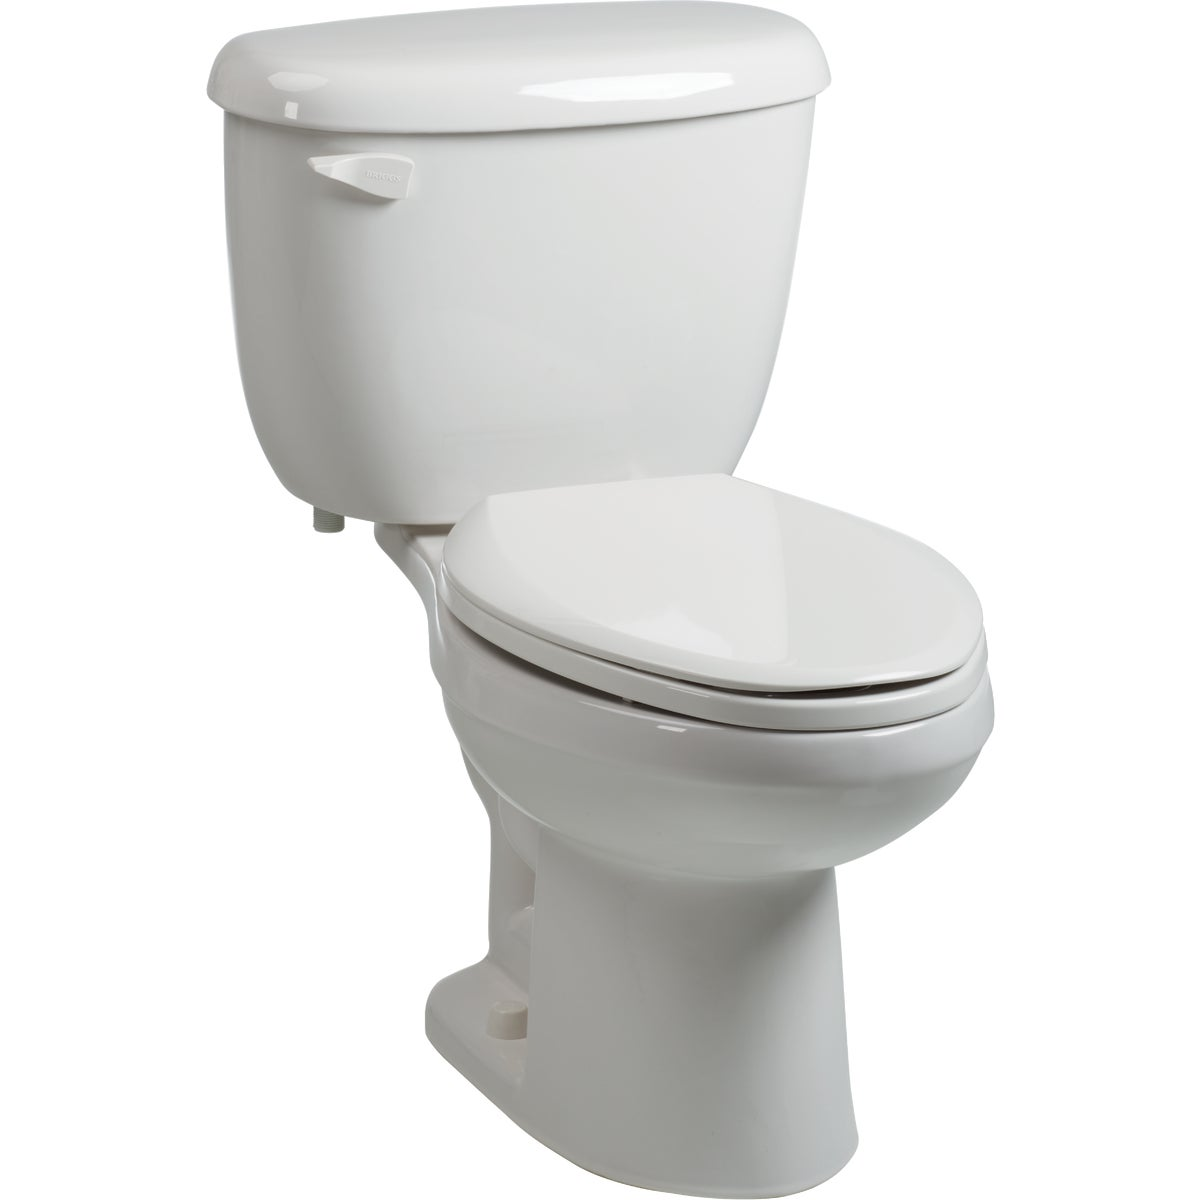 WHT ELONG TOILET EXPRESS - 7006-130 by BRIGSS - IMPORTS